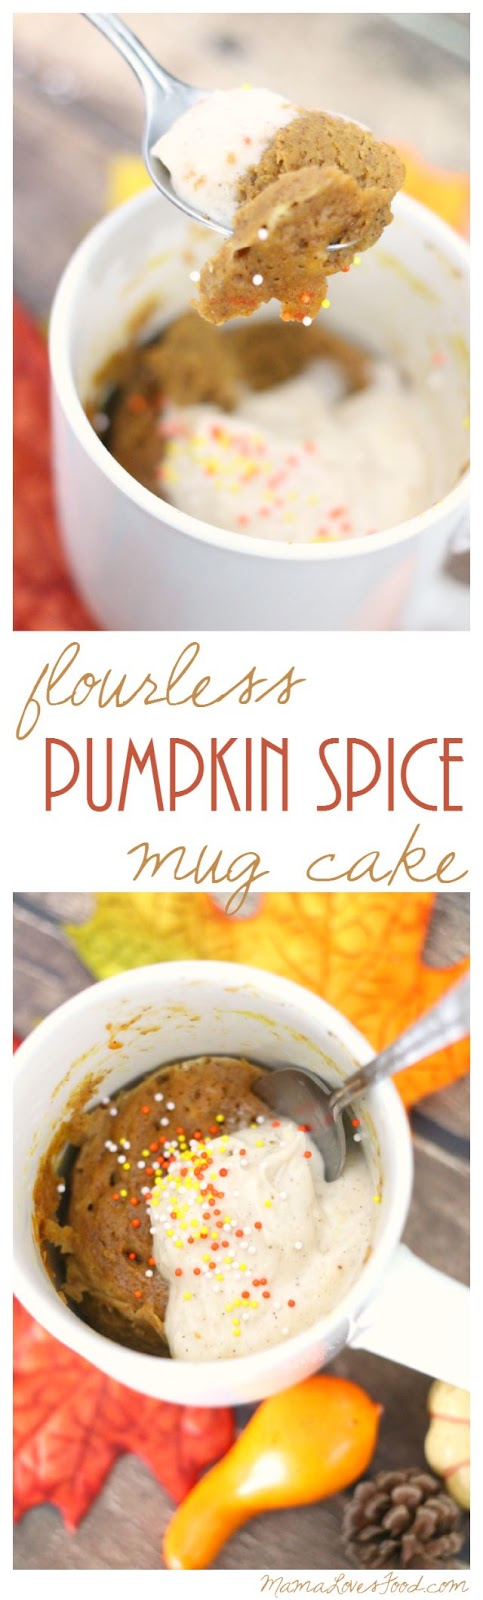 Flourless Pumpkin Spice Mug Cake Recipe